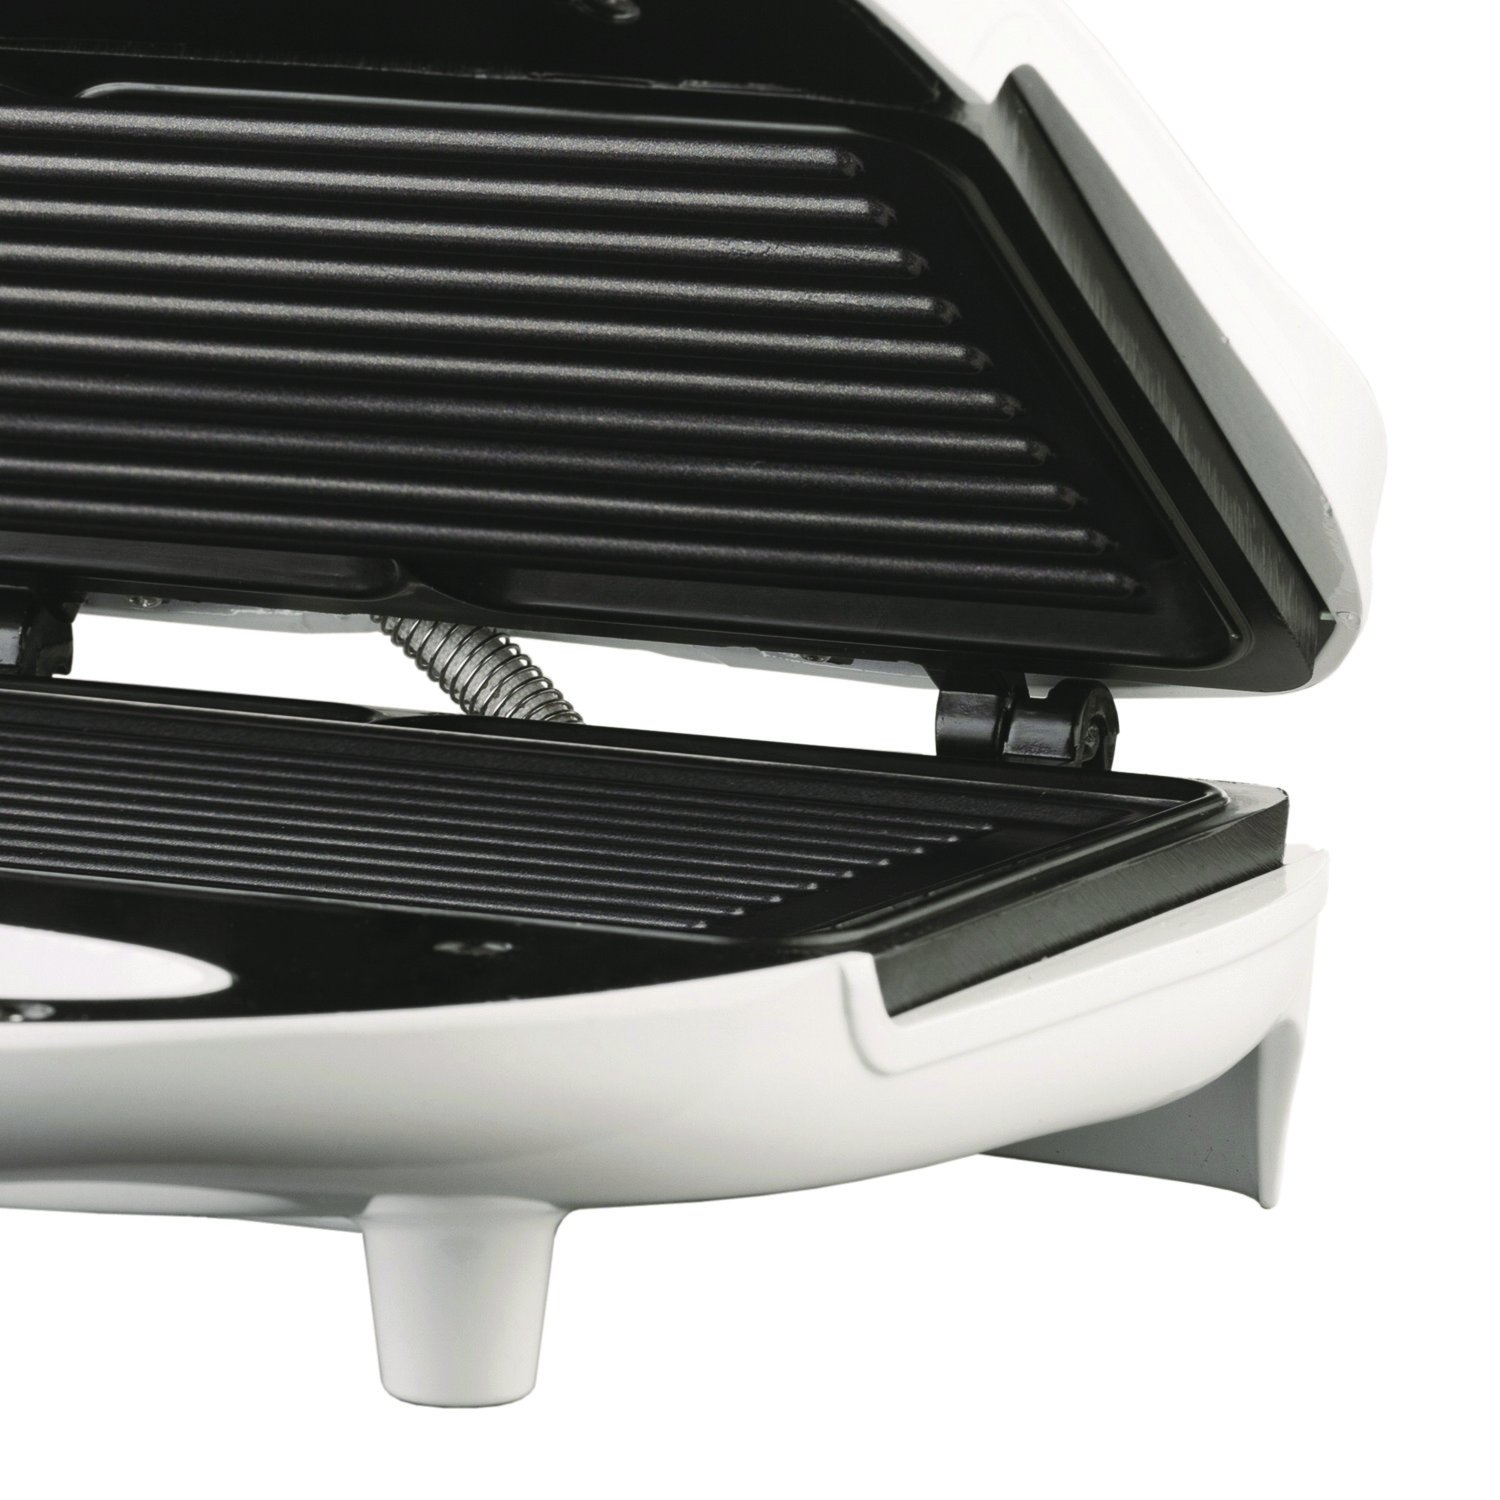 Brentwood TS-245 Non-Stick Panini Maker by Brentwood (Image #6)